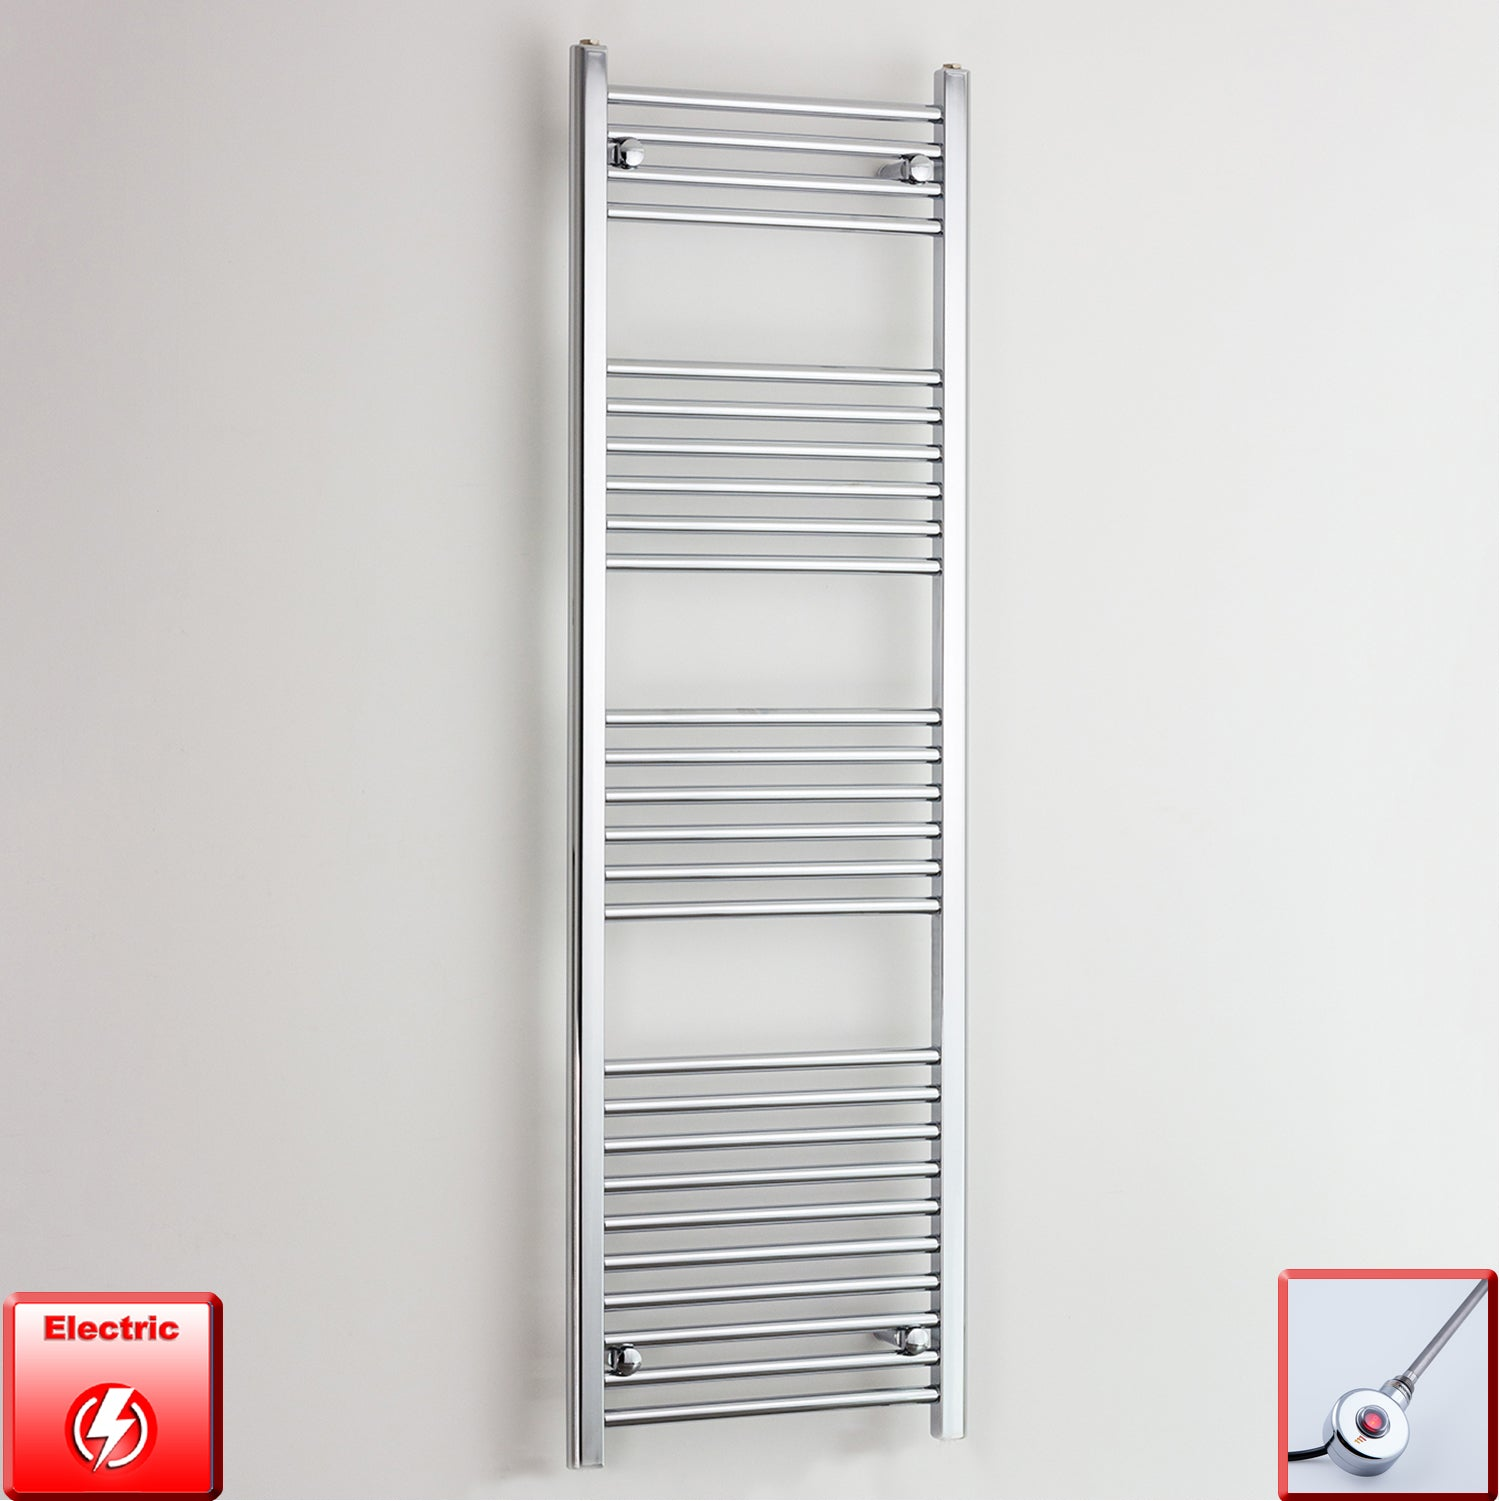 500mm Wide 1800mm High Flat Or Curved Chrome Pre-Filled Electric Heated Towel Rail Radiator HTR